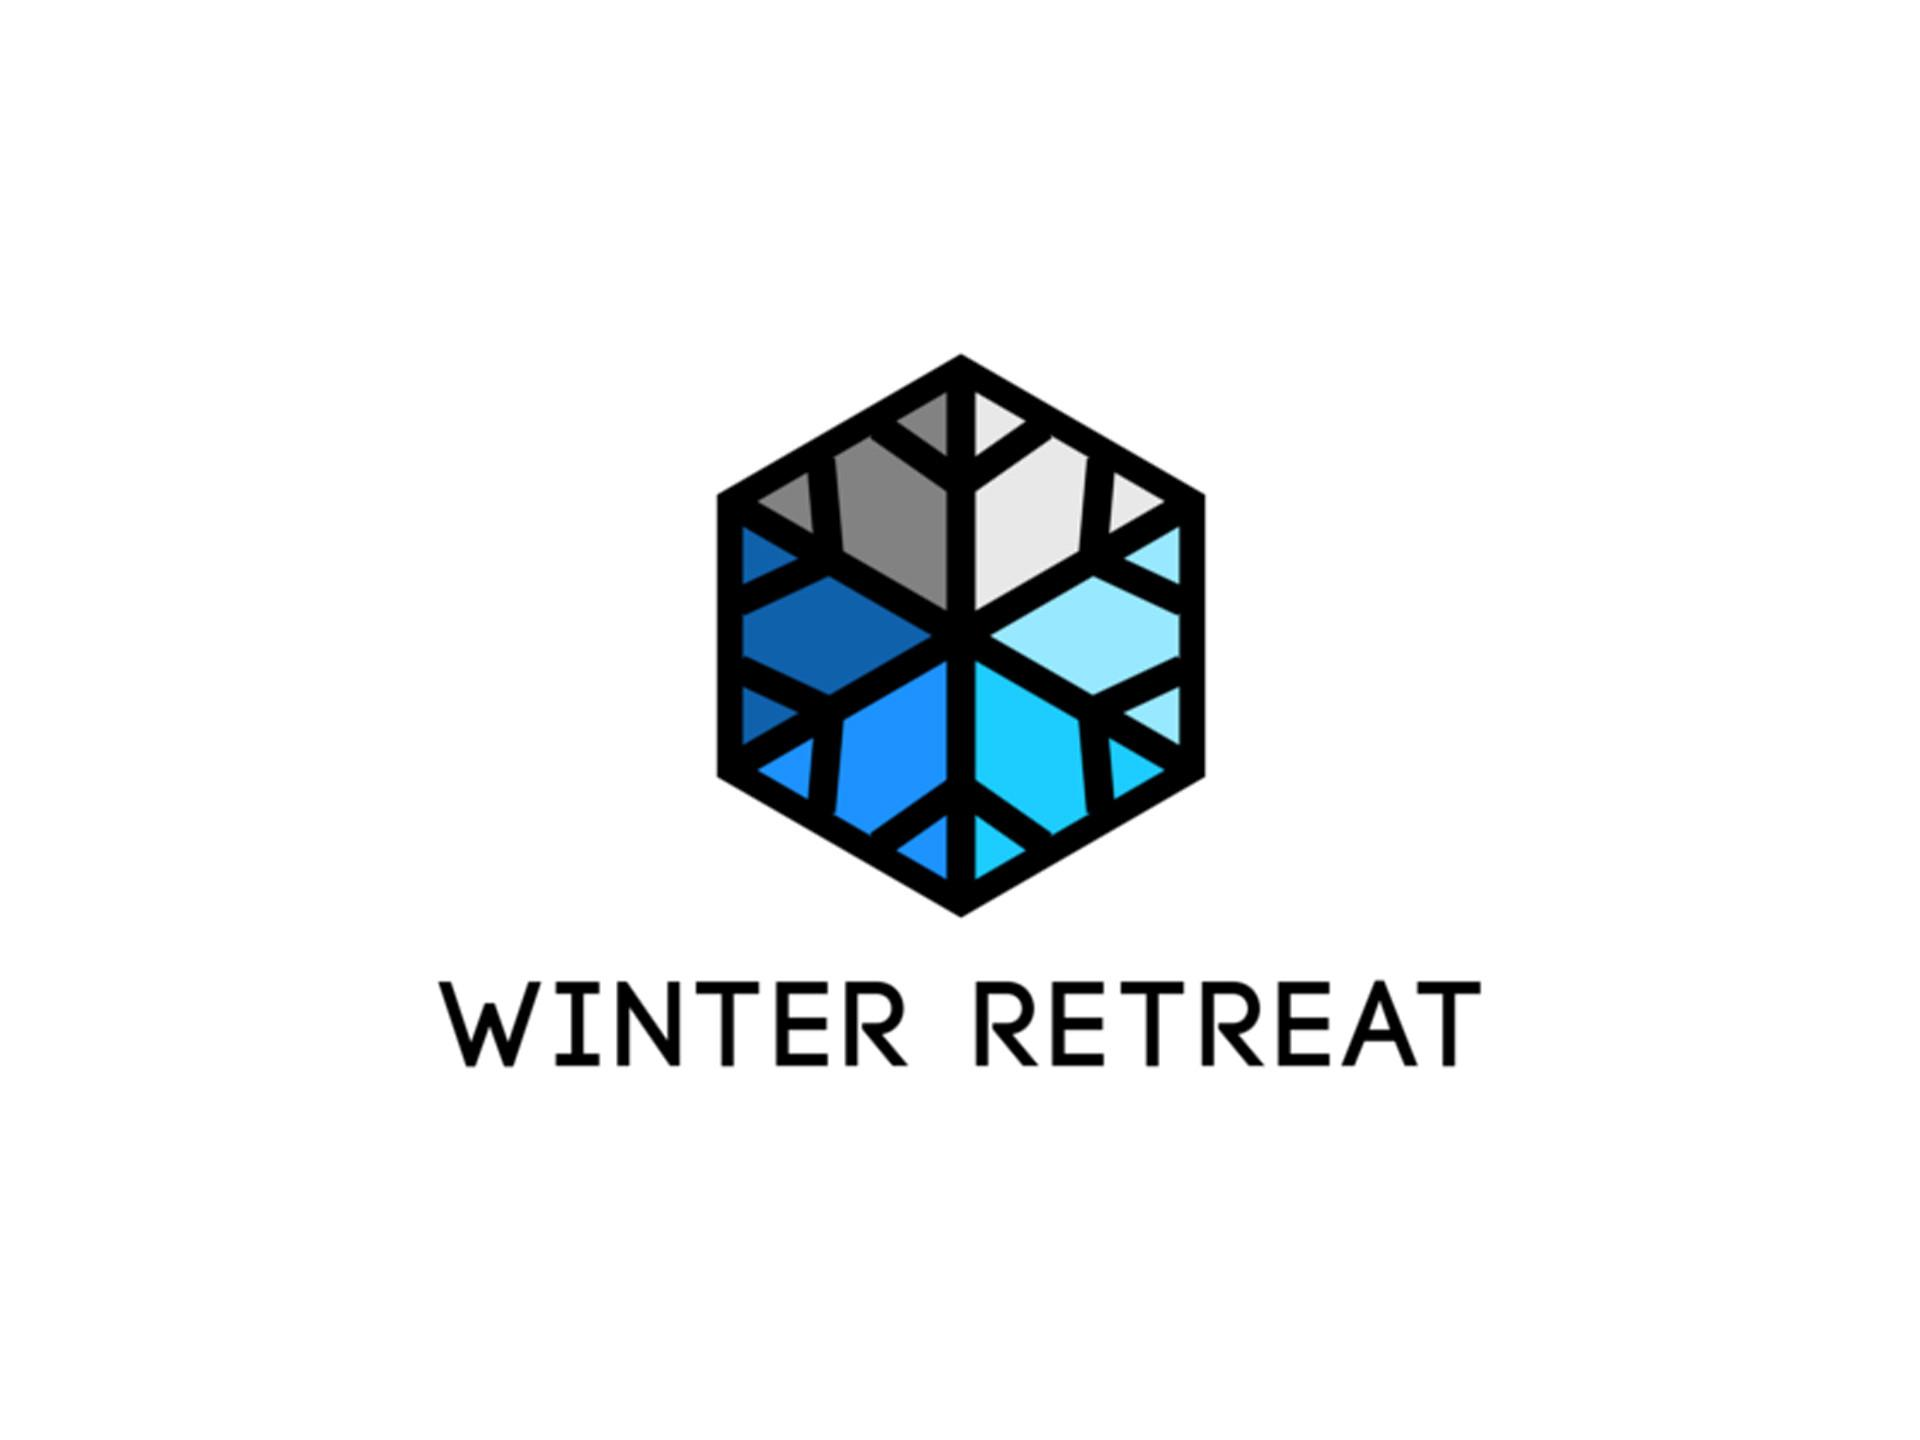 Winter Retreat 2013 Branding Design Brendan Binger